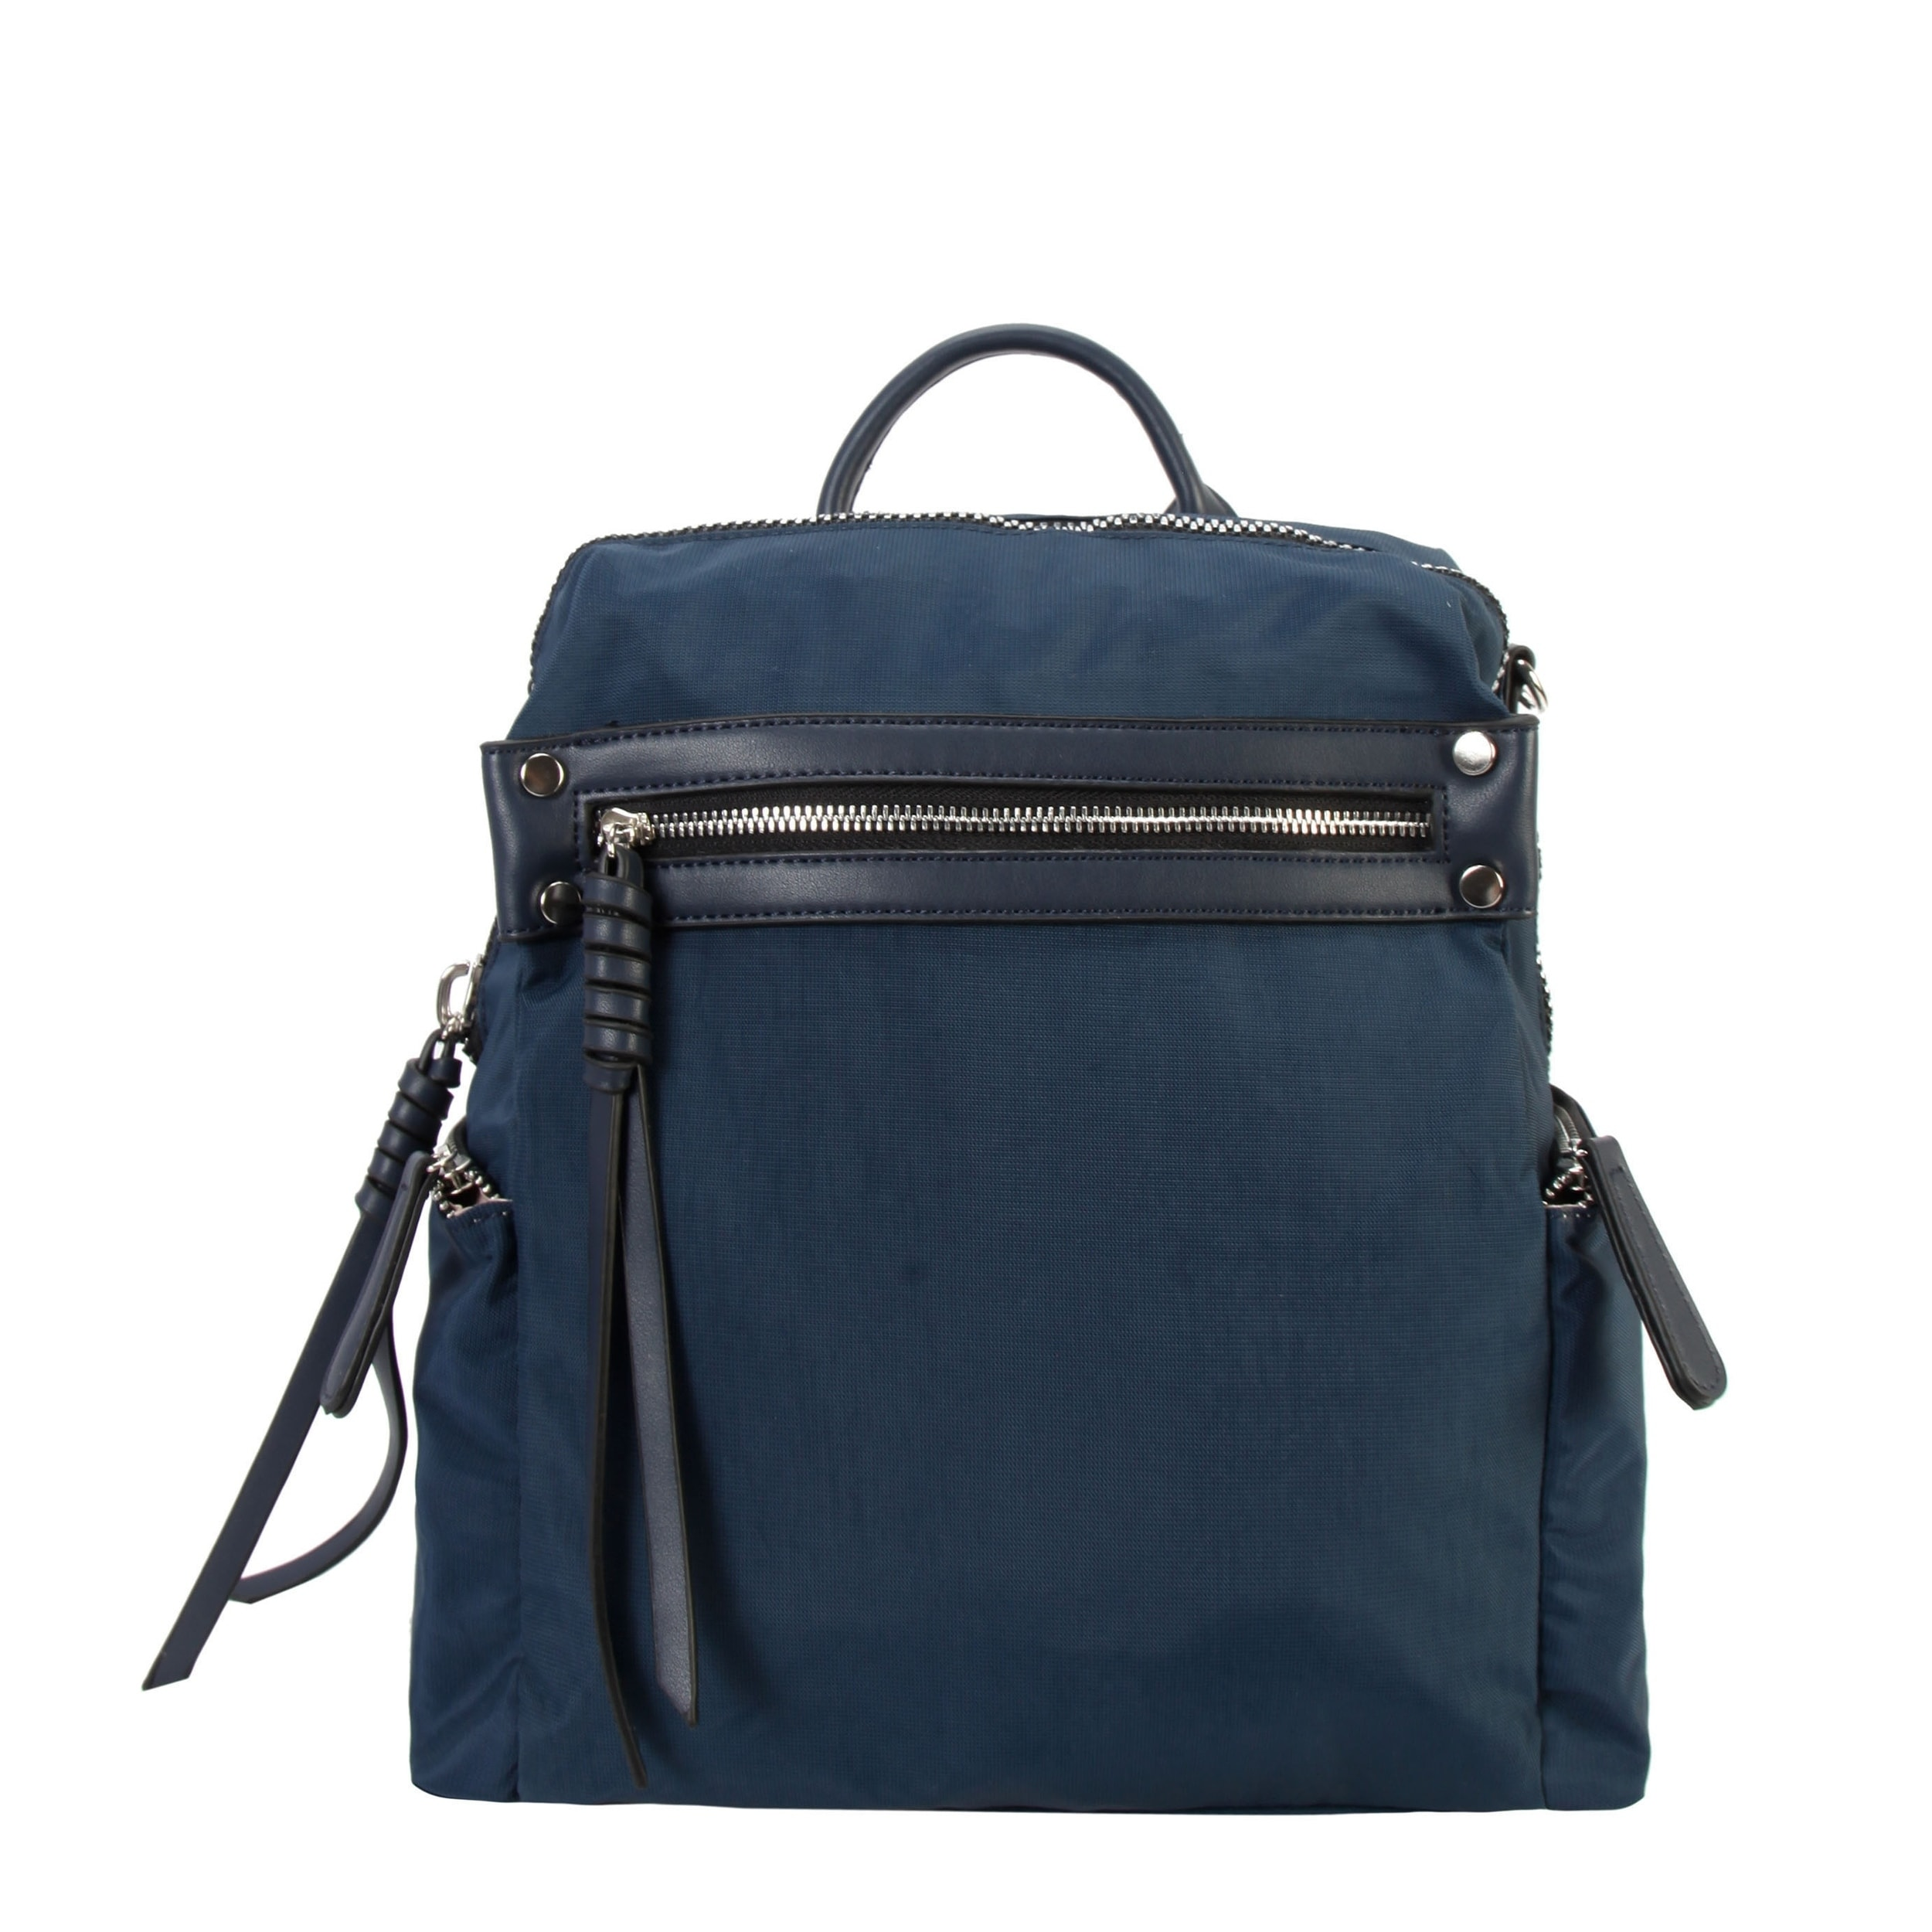 Shop Diophy Fashion Two Ways Use Lightweight Backpack - On Sale ... 86575edc6f651